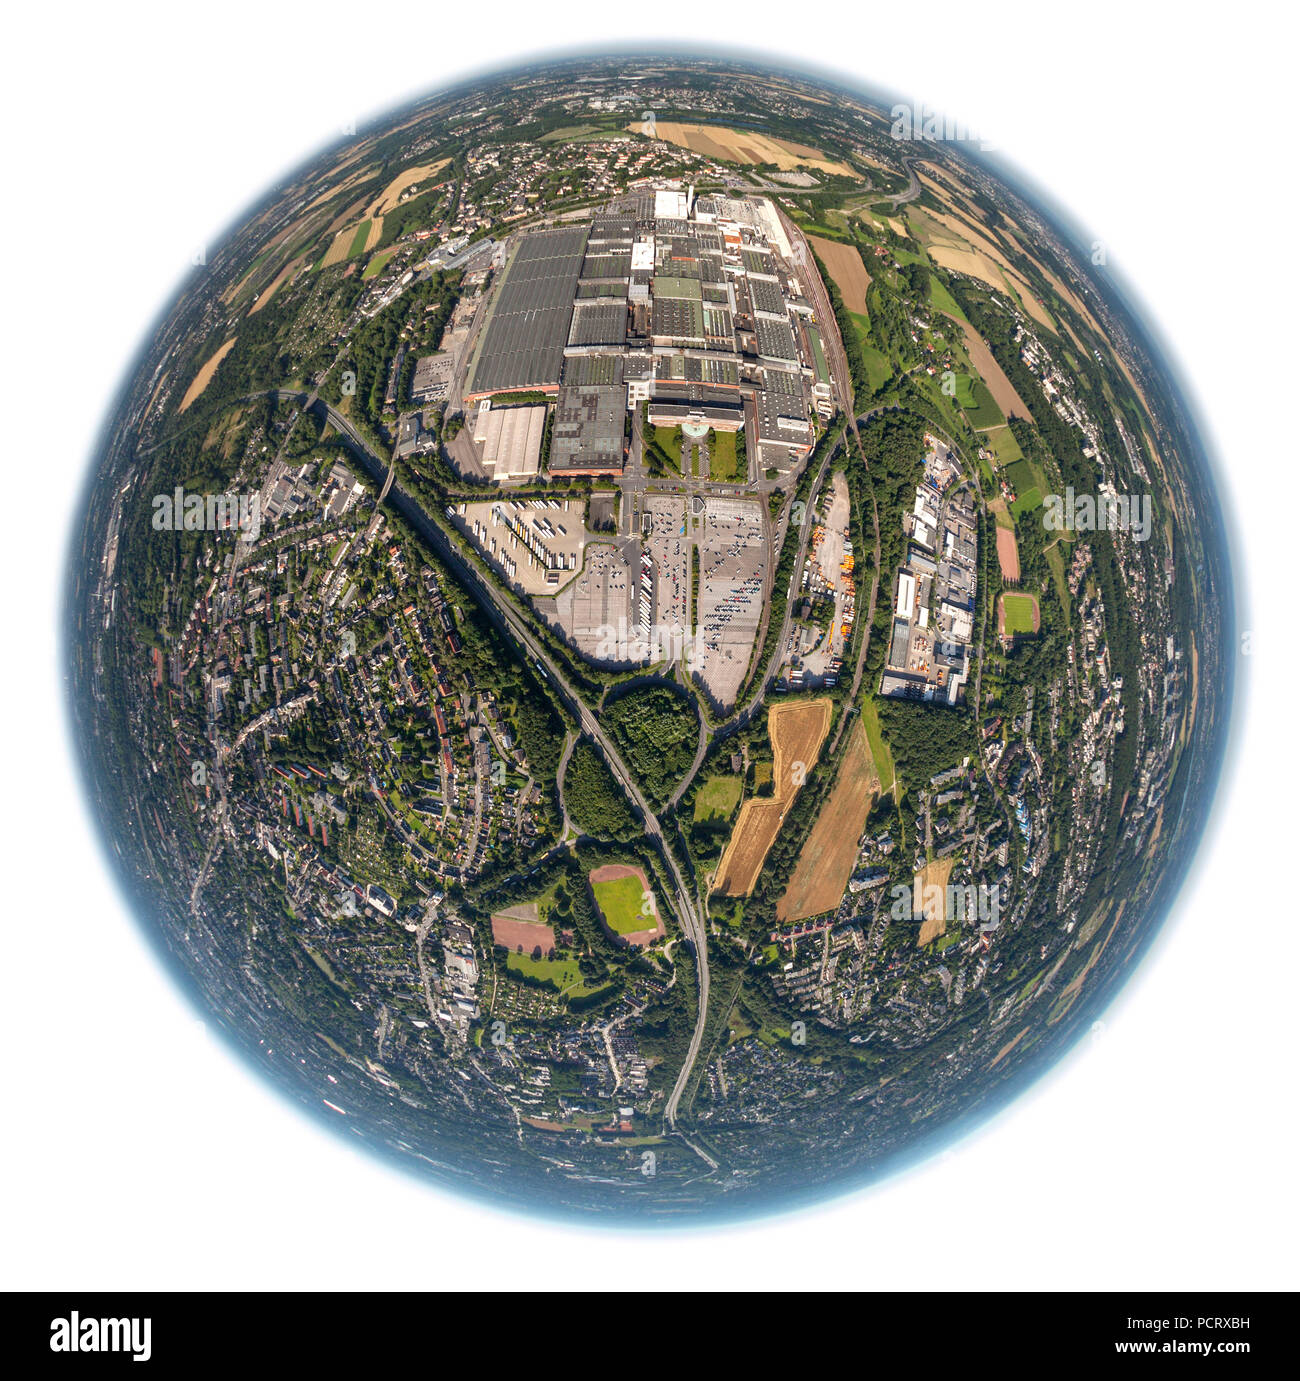 Aerial view, OPEL Opelwerk 1, General Motors, production shed, Bochum, Ruhr area, North Rine-Westphalia, Germany, Europe - Stock Image